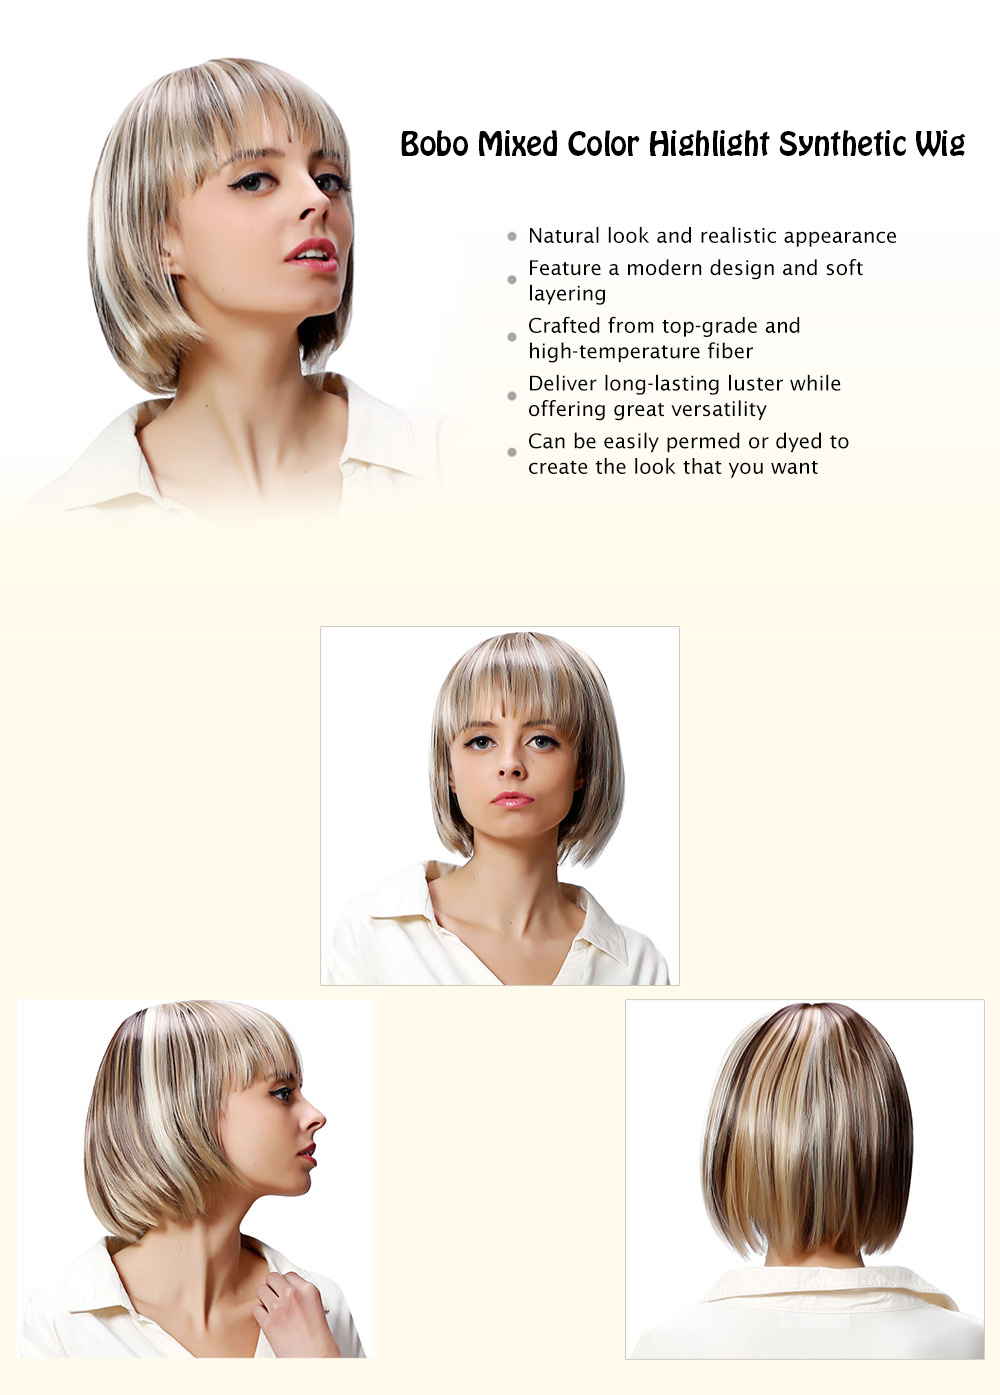 AISIHAIR Full Bangs Bobo Mixed Color Highlight Synthetic Wigs for Women